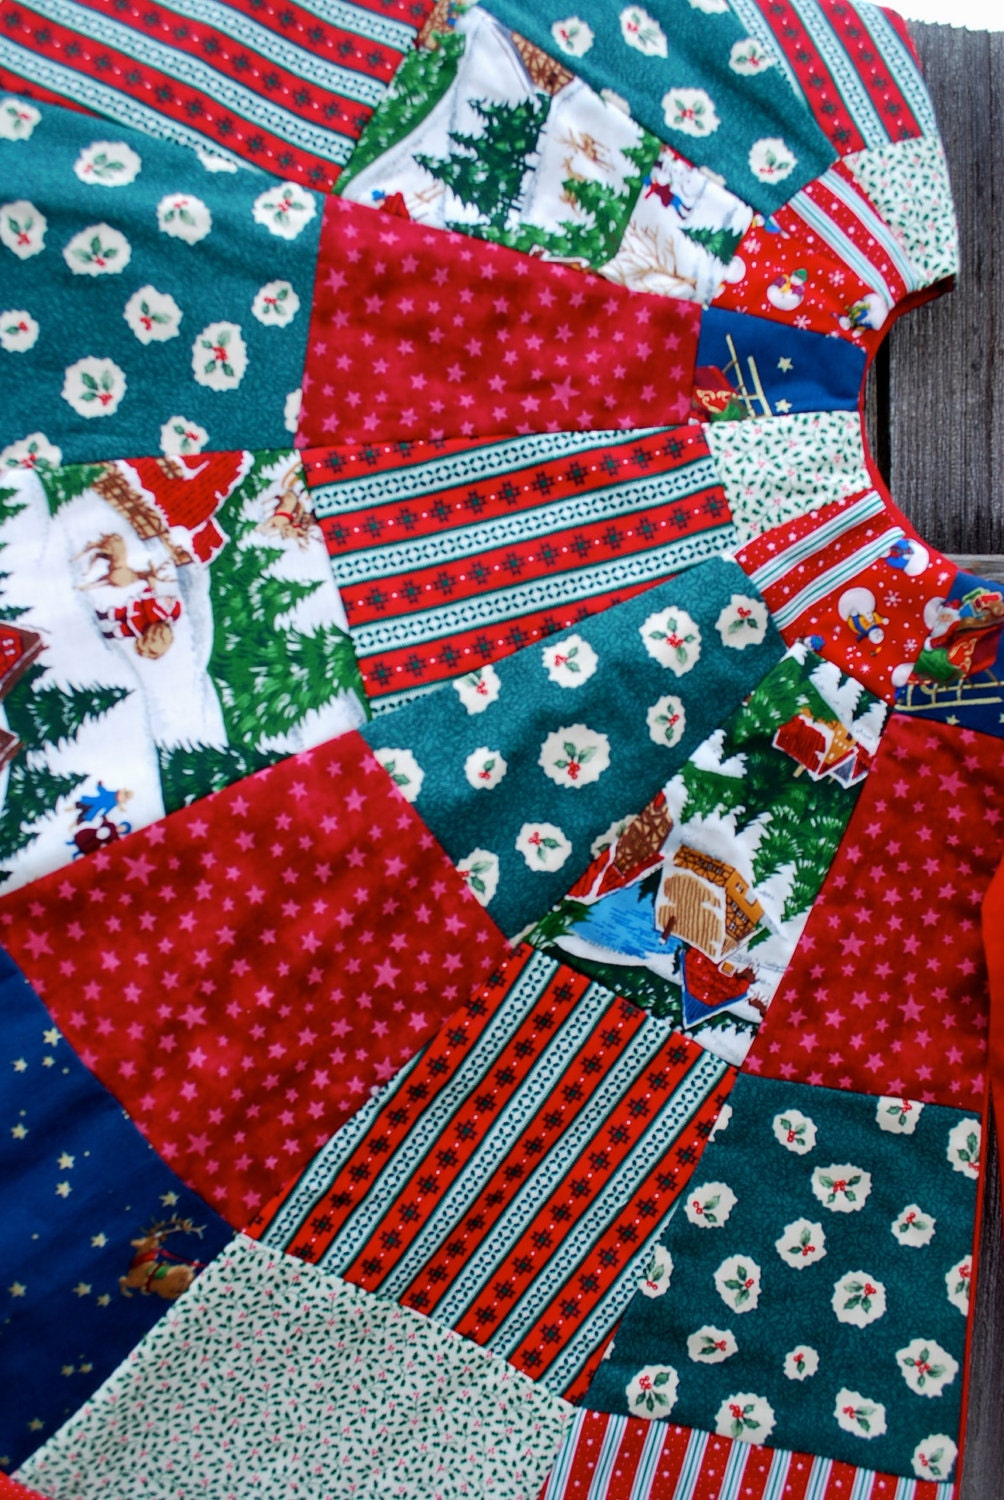 Quilted Christmas Tree Skirt Pinterest : Quilted Christmas Tree Skirt by jcawley07 on Etsy